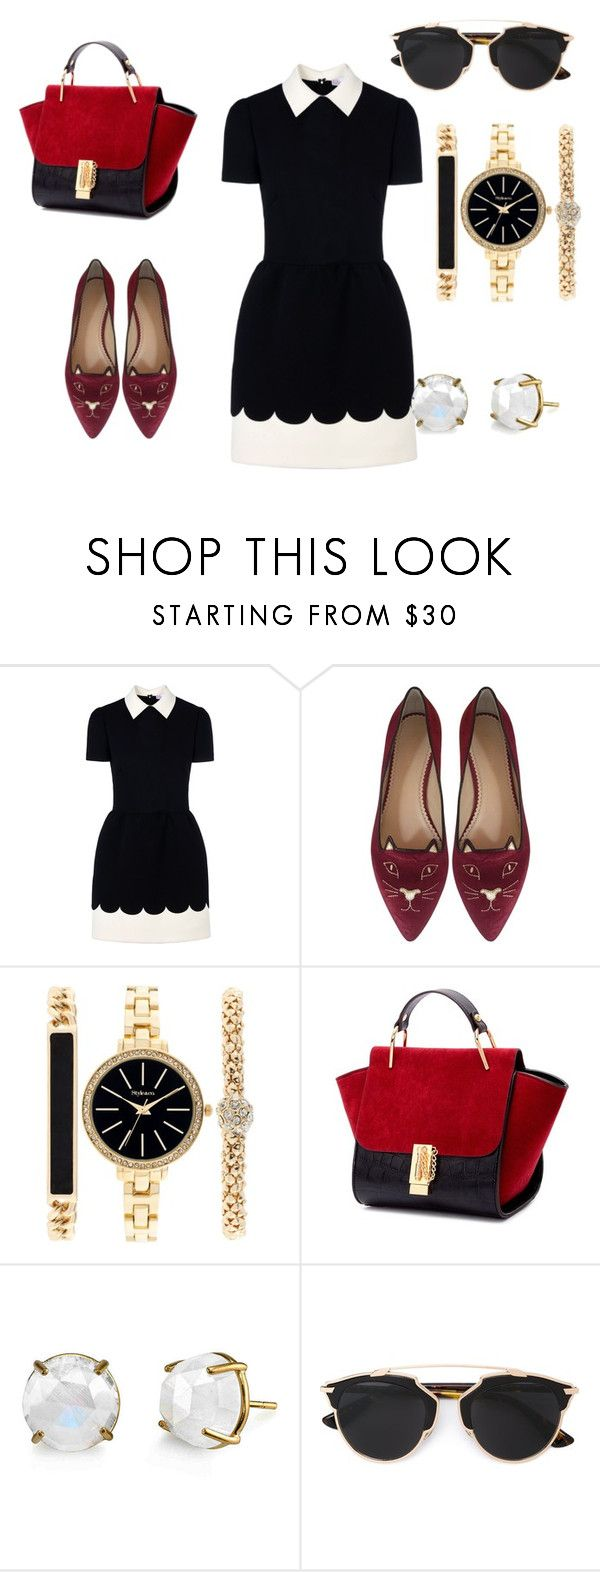 """""""My preppy style by Mimi"""" by mokatsanemk on Polyvore featuring RED Valentino, Charlotte Olympia, Style & Co., Christian Dior, women's clothing, women, female, woman, misses and juniors"""